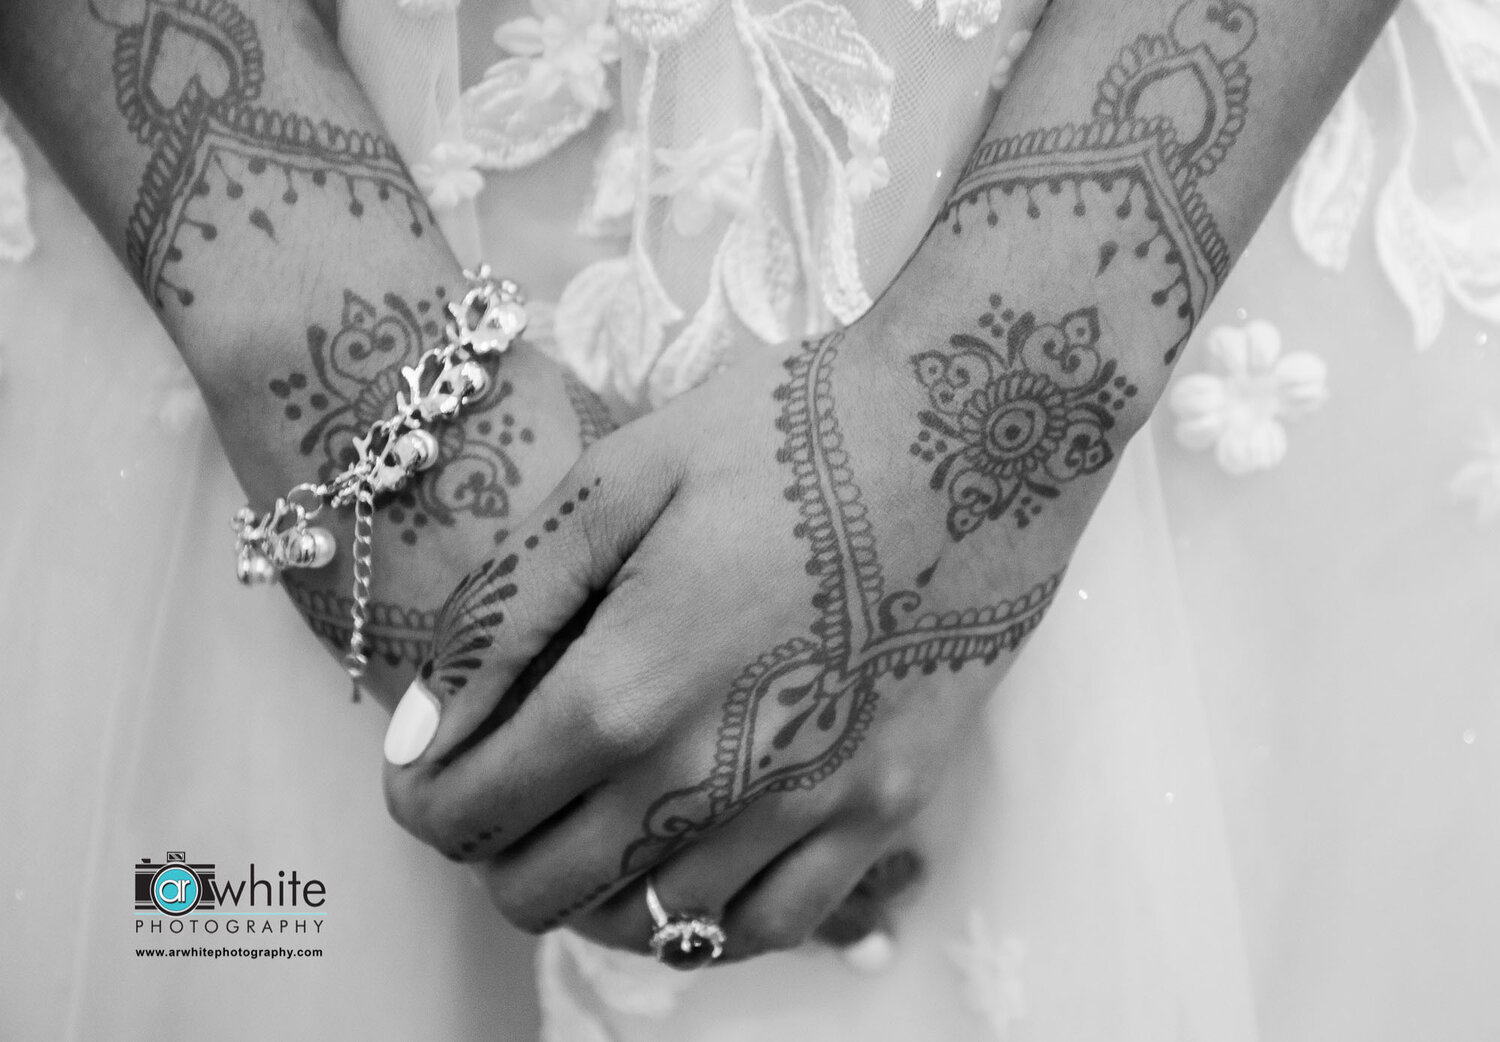 Lovely henna tattoos adorn the bride's hands for her wedding at Kylan Barn.